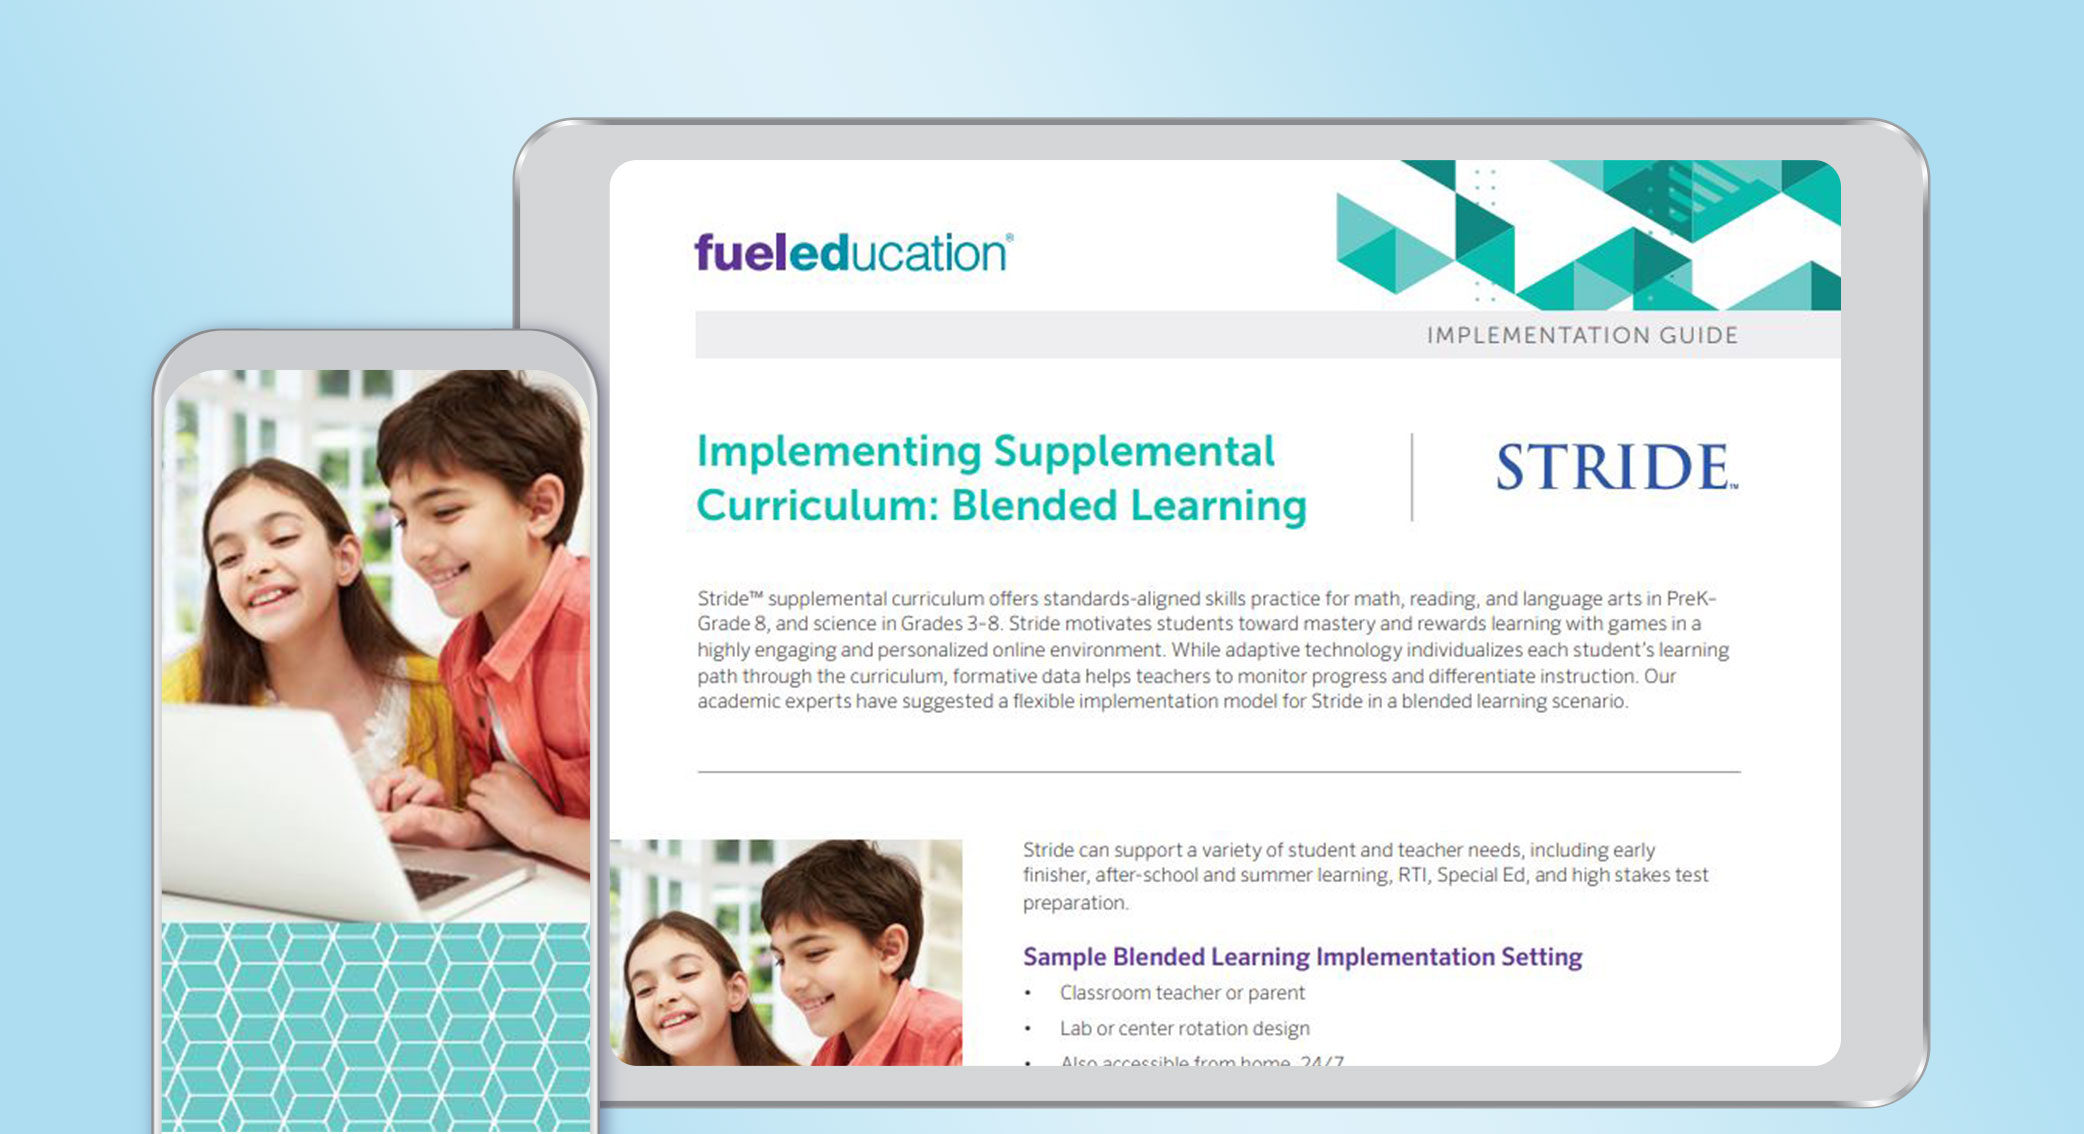 Rewards-Based Learning Solution Implementation Guide